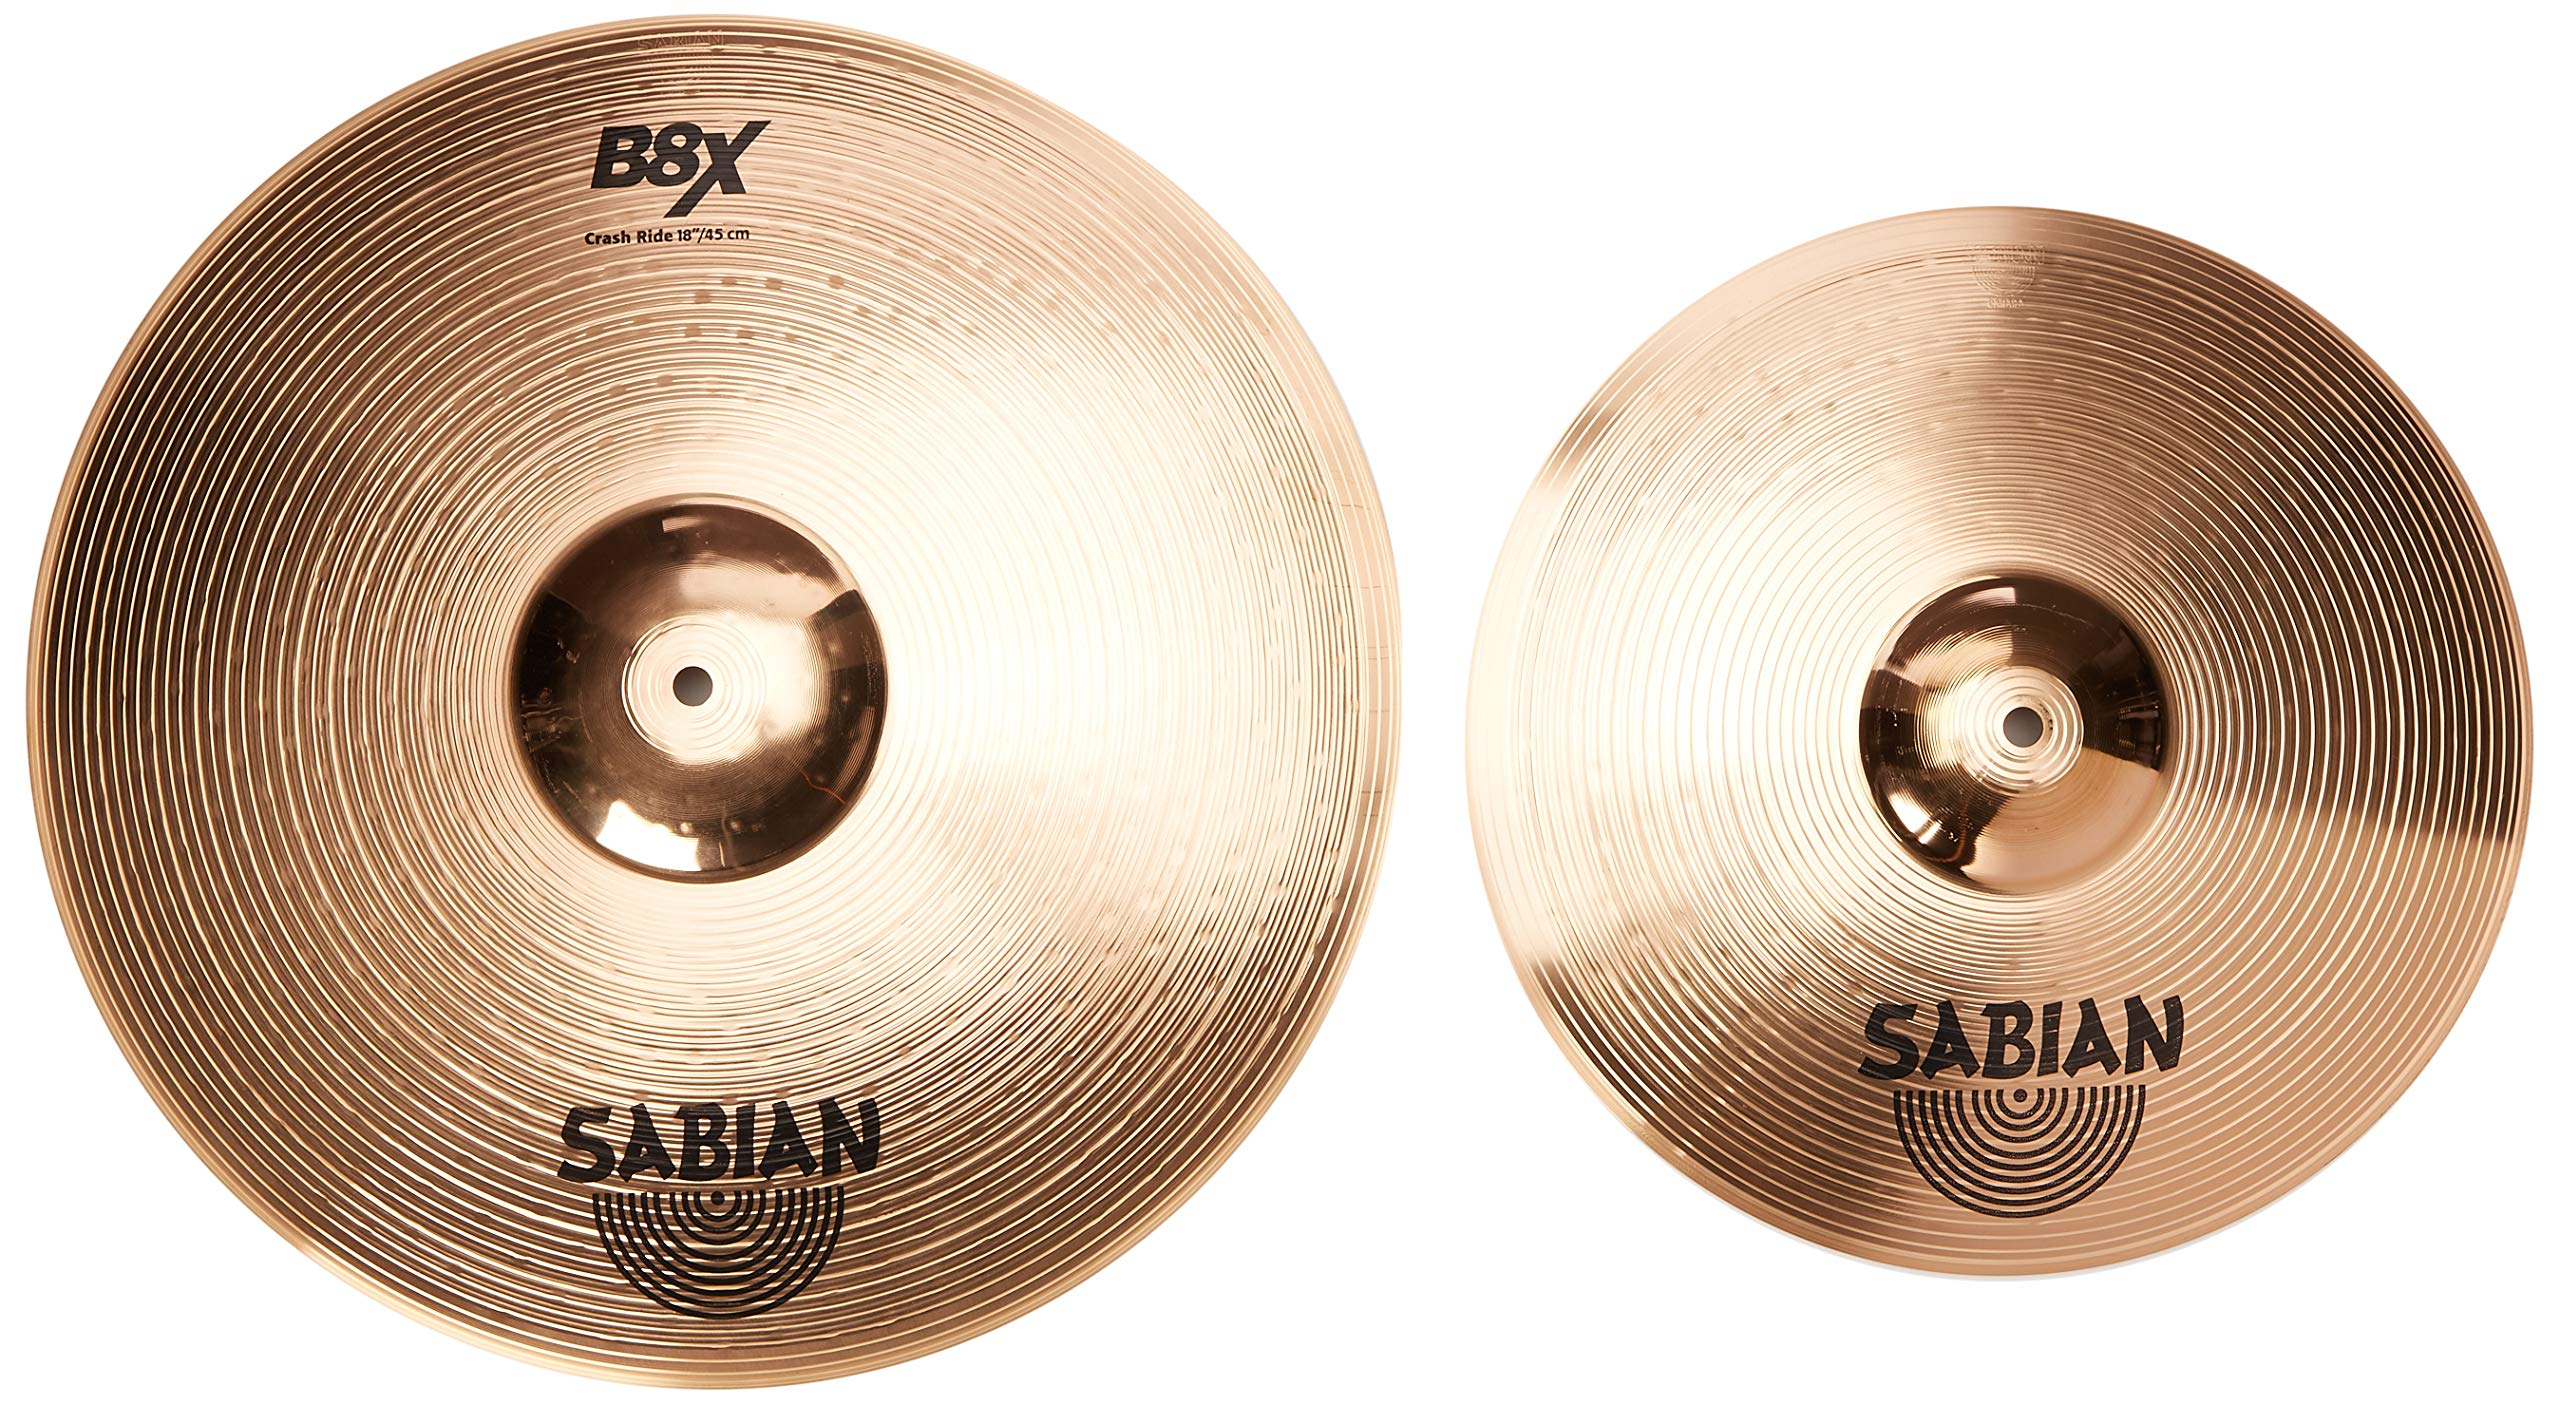 Sabian Cymbal Variety Package, inch (45002X)